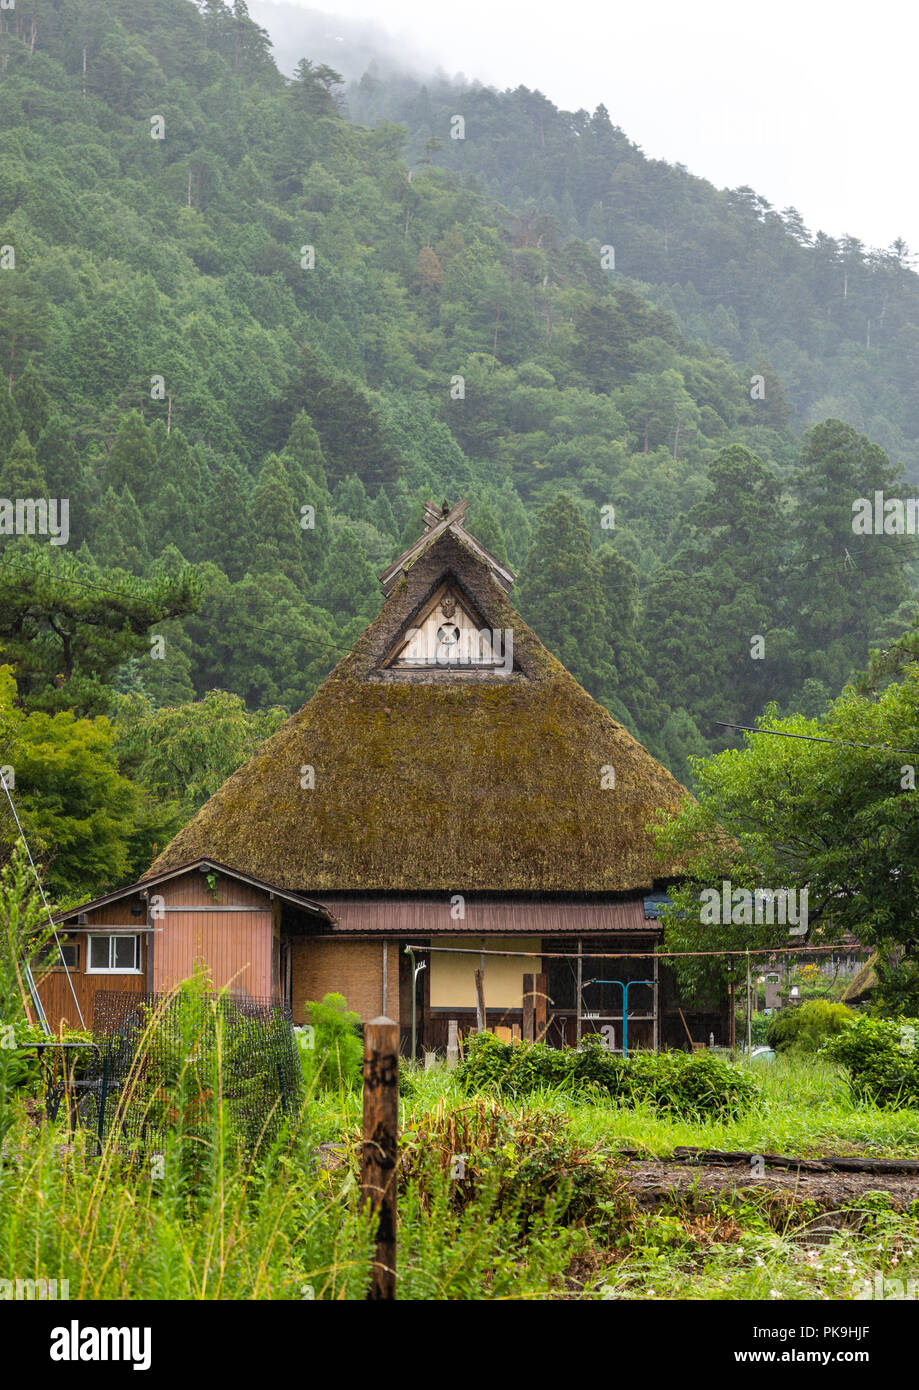 Thatched roofed houses in a traditional village against a bamboo forest, Kyoto Prefecture, Miyama, Japan - Stock Image